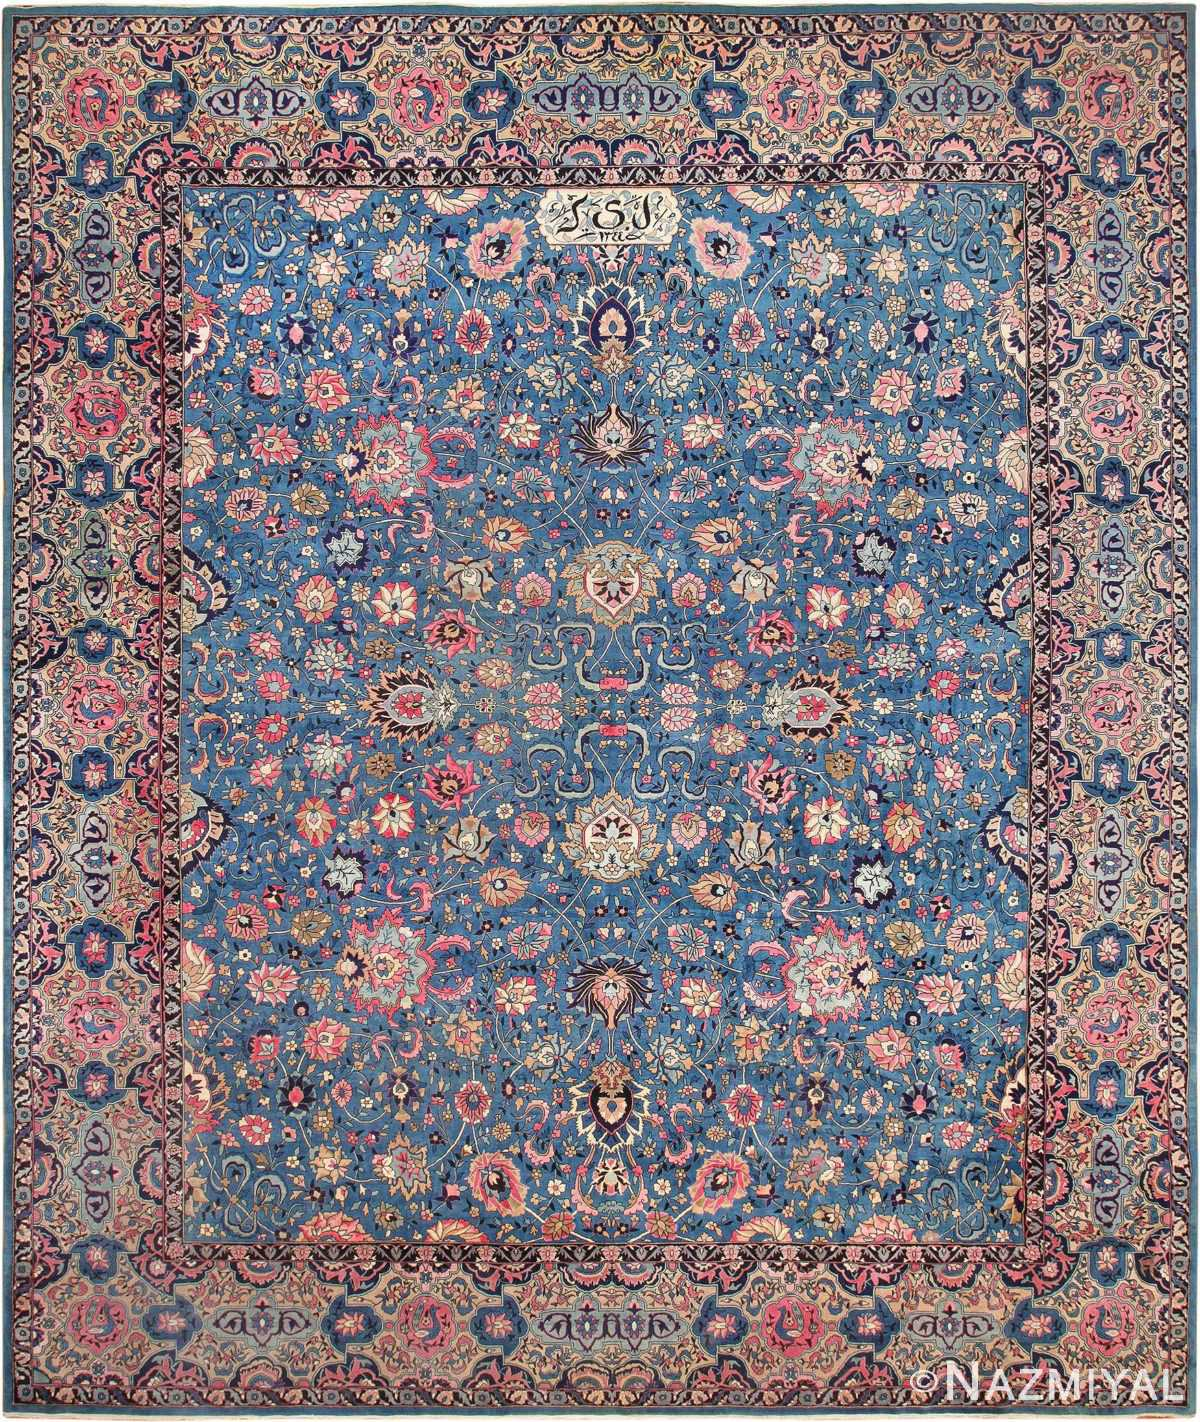 Large Light Blue Antique Indian Agra Rug 49594 by Nazmiyal